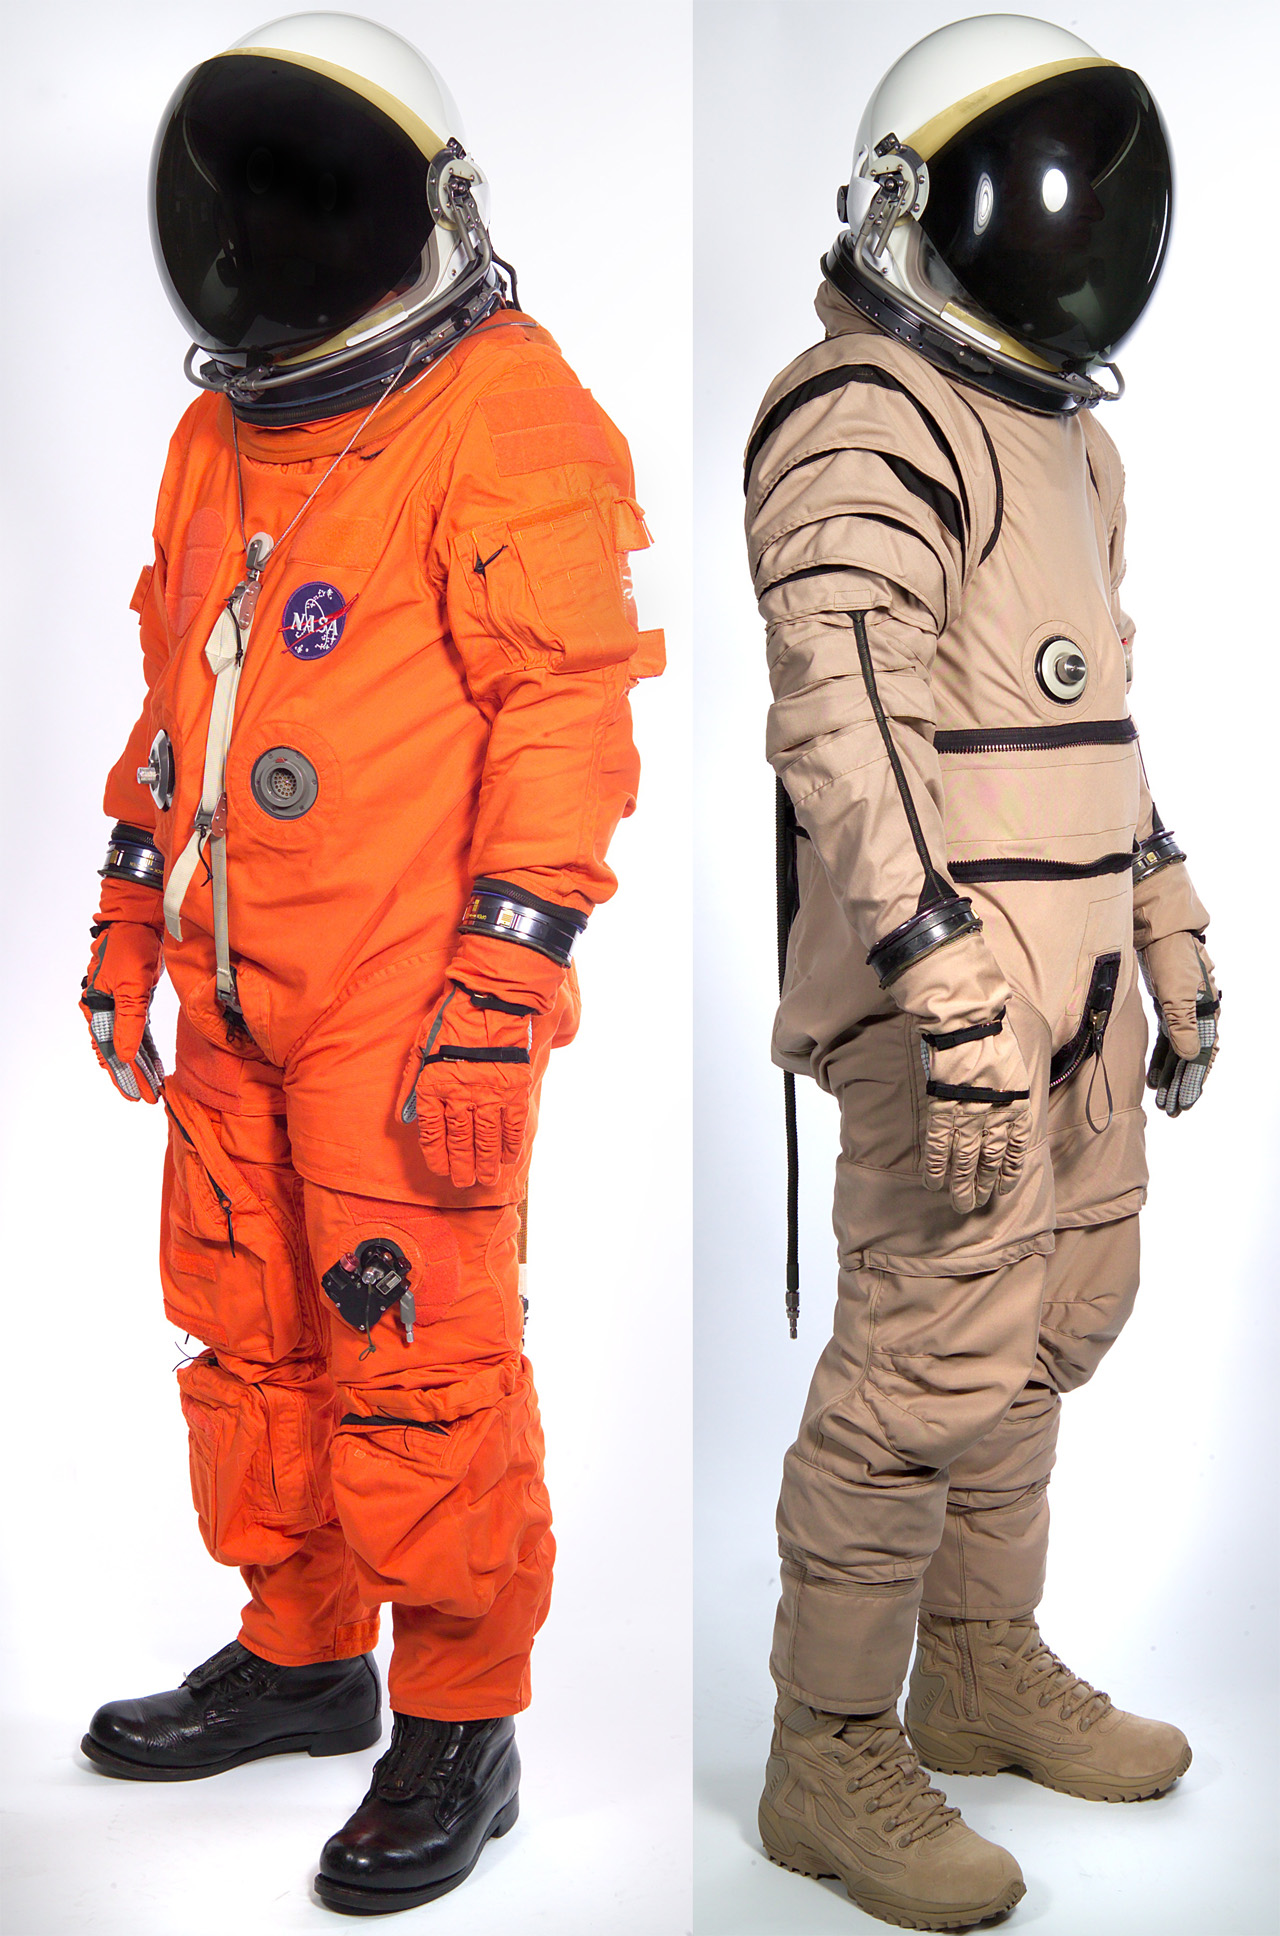 1000+ images about Pressure Suits on Pinterest | Space ...